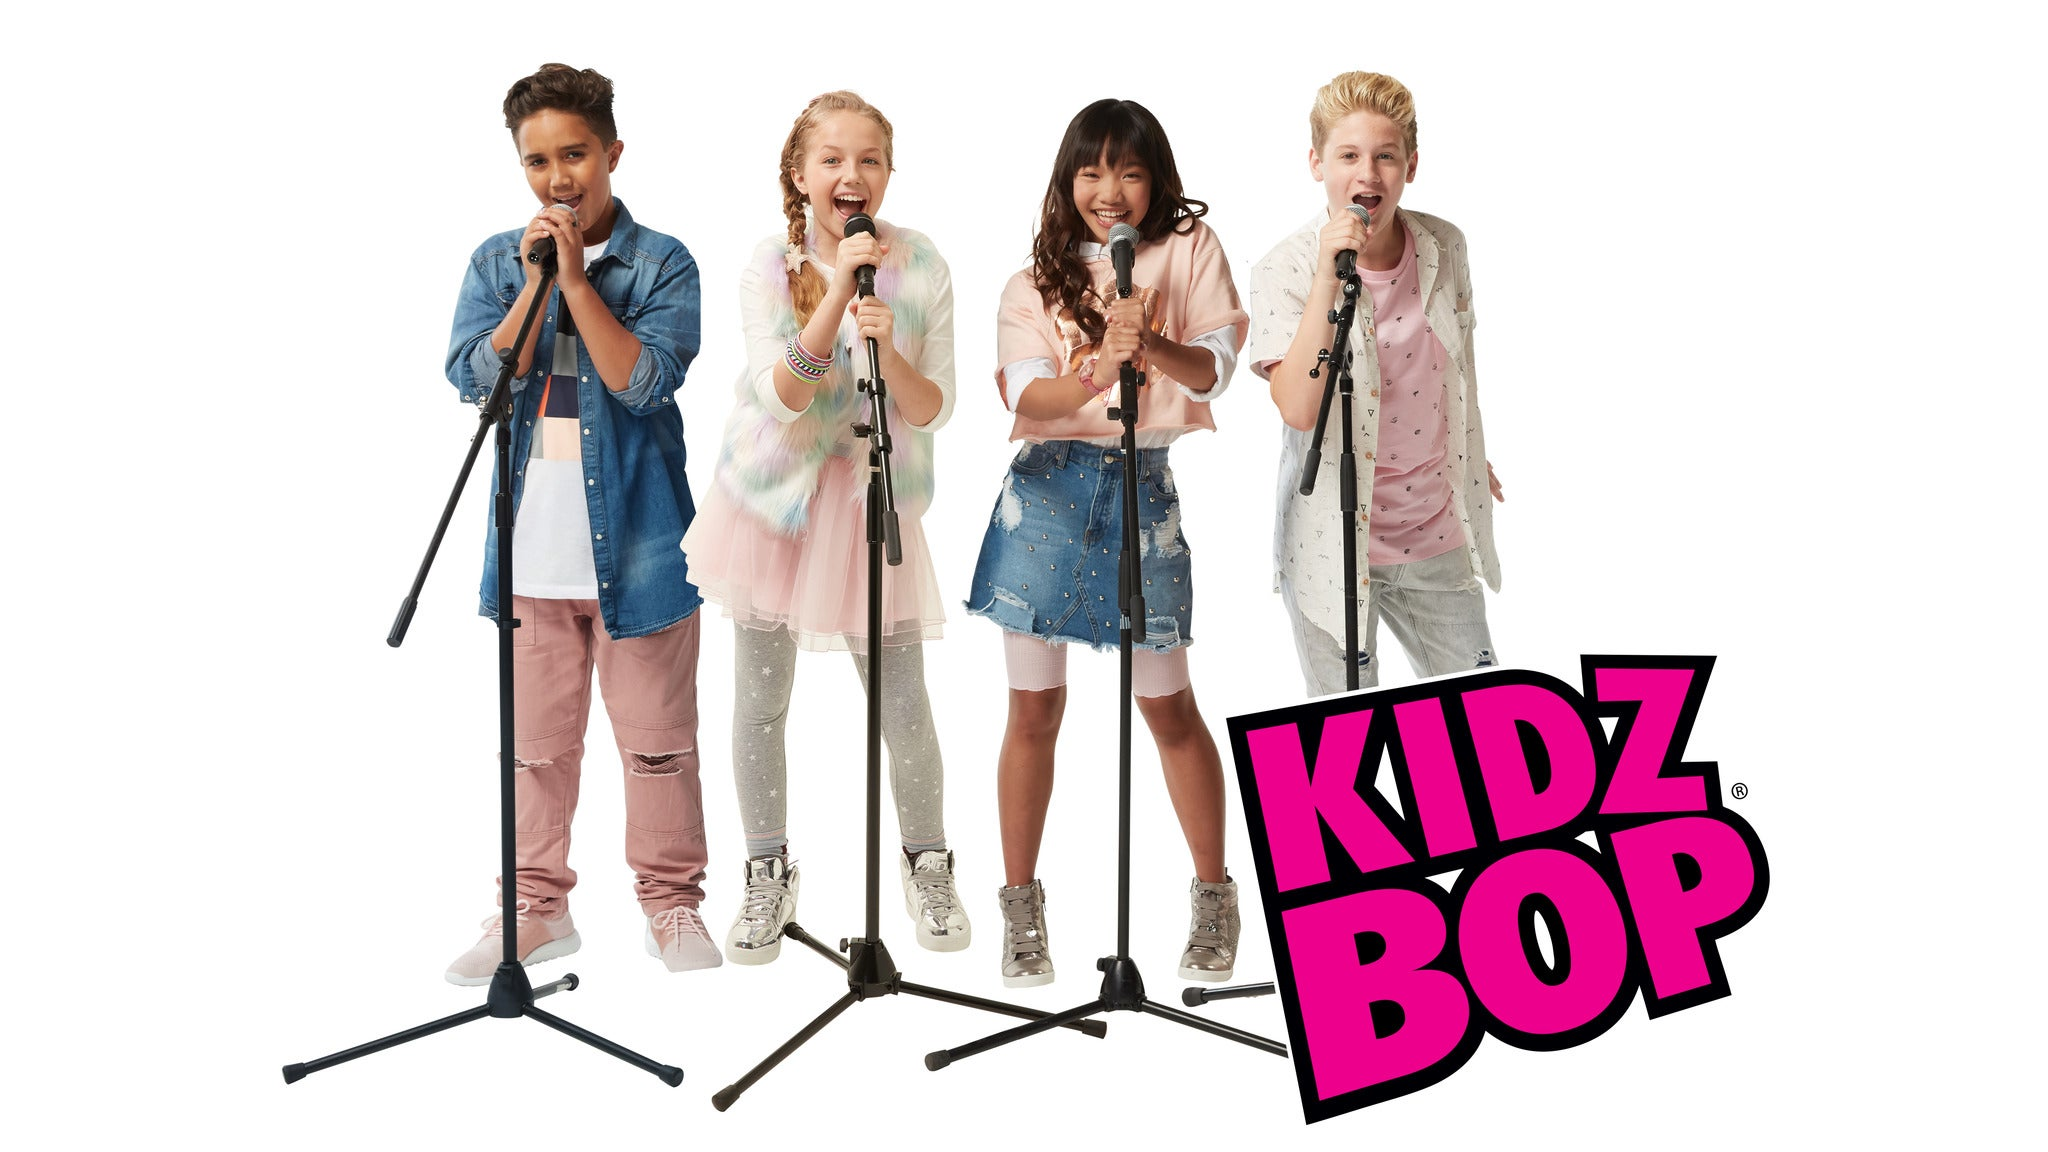 KIDZ BOP - Meet & Greet Packages